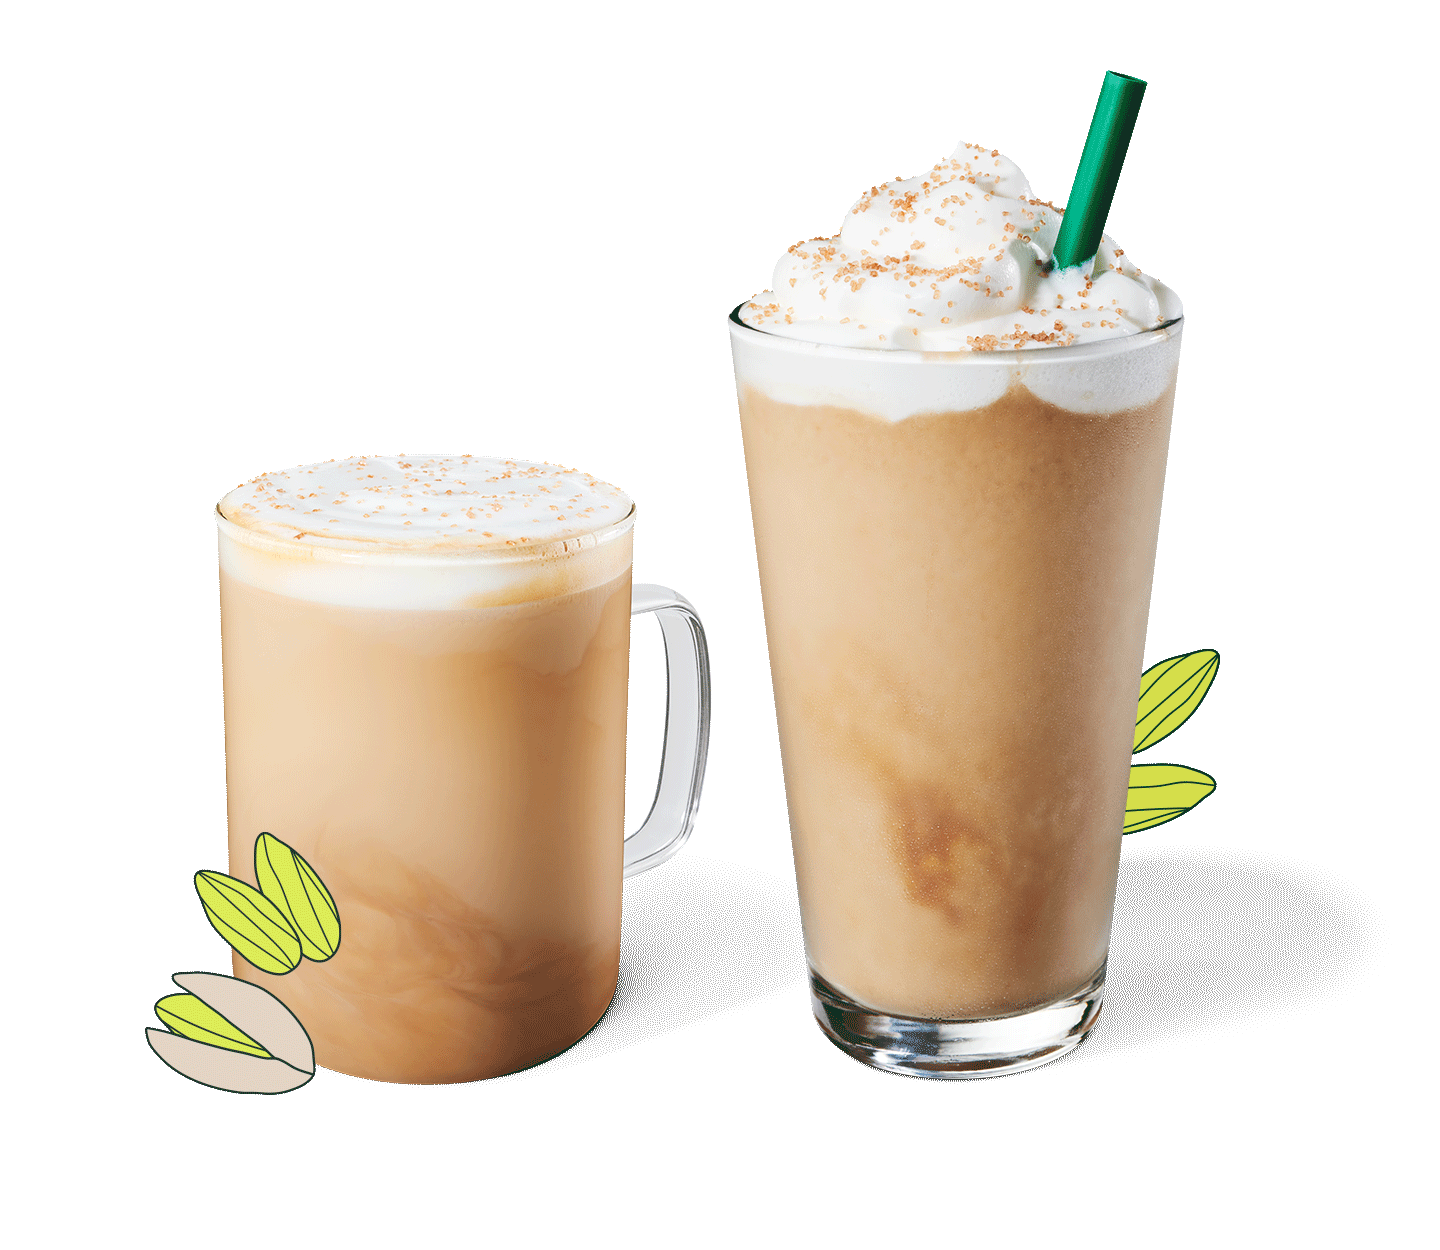 Pistachio Latte and Pistachio Frappuccino® blended beverage in glassware.